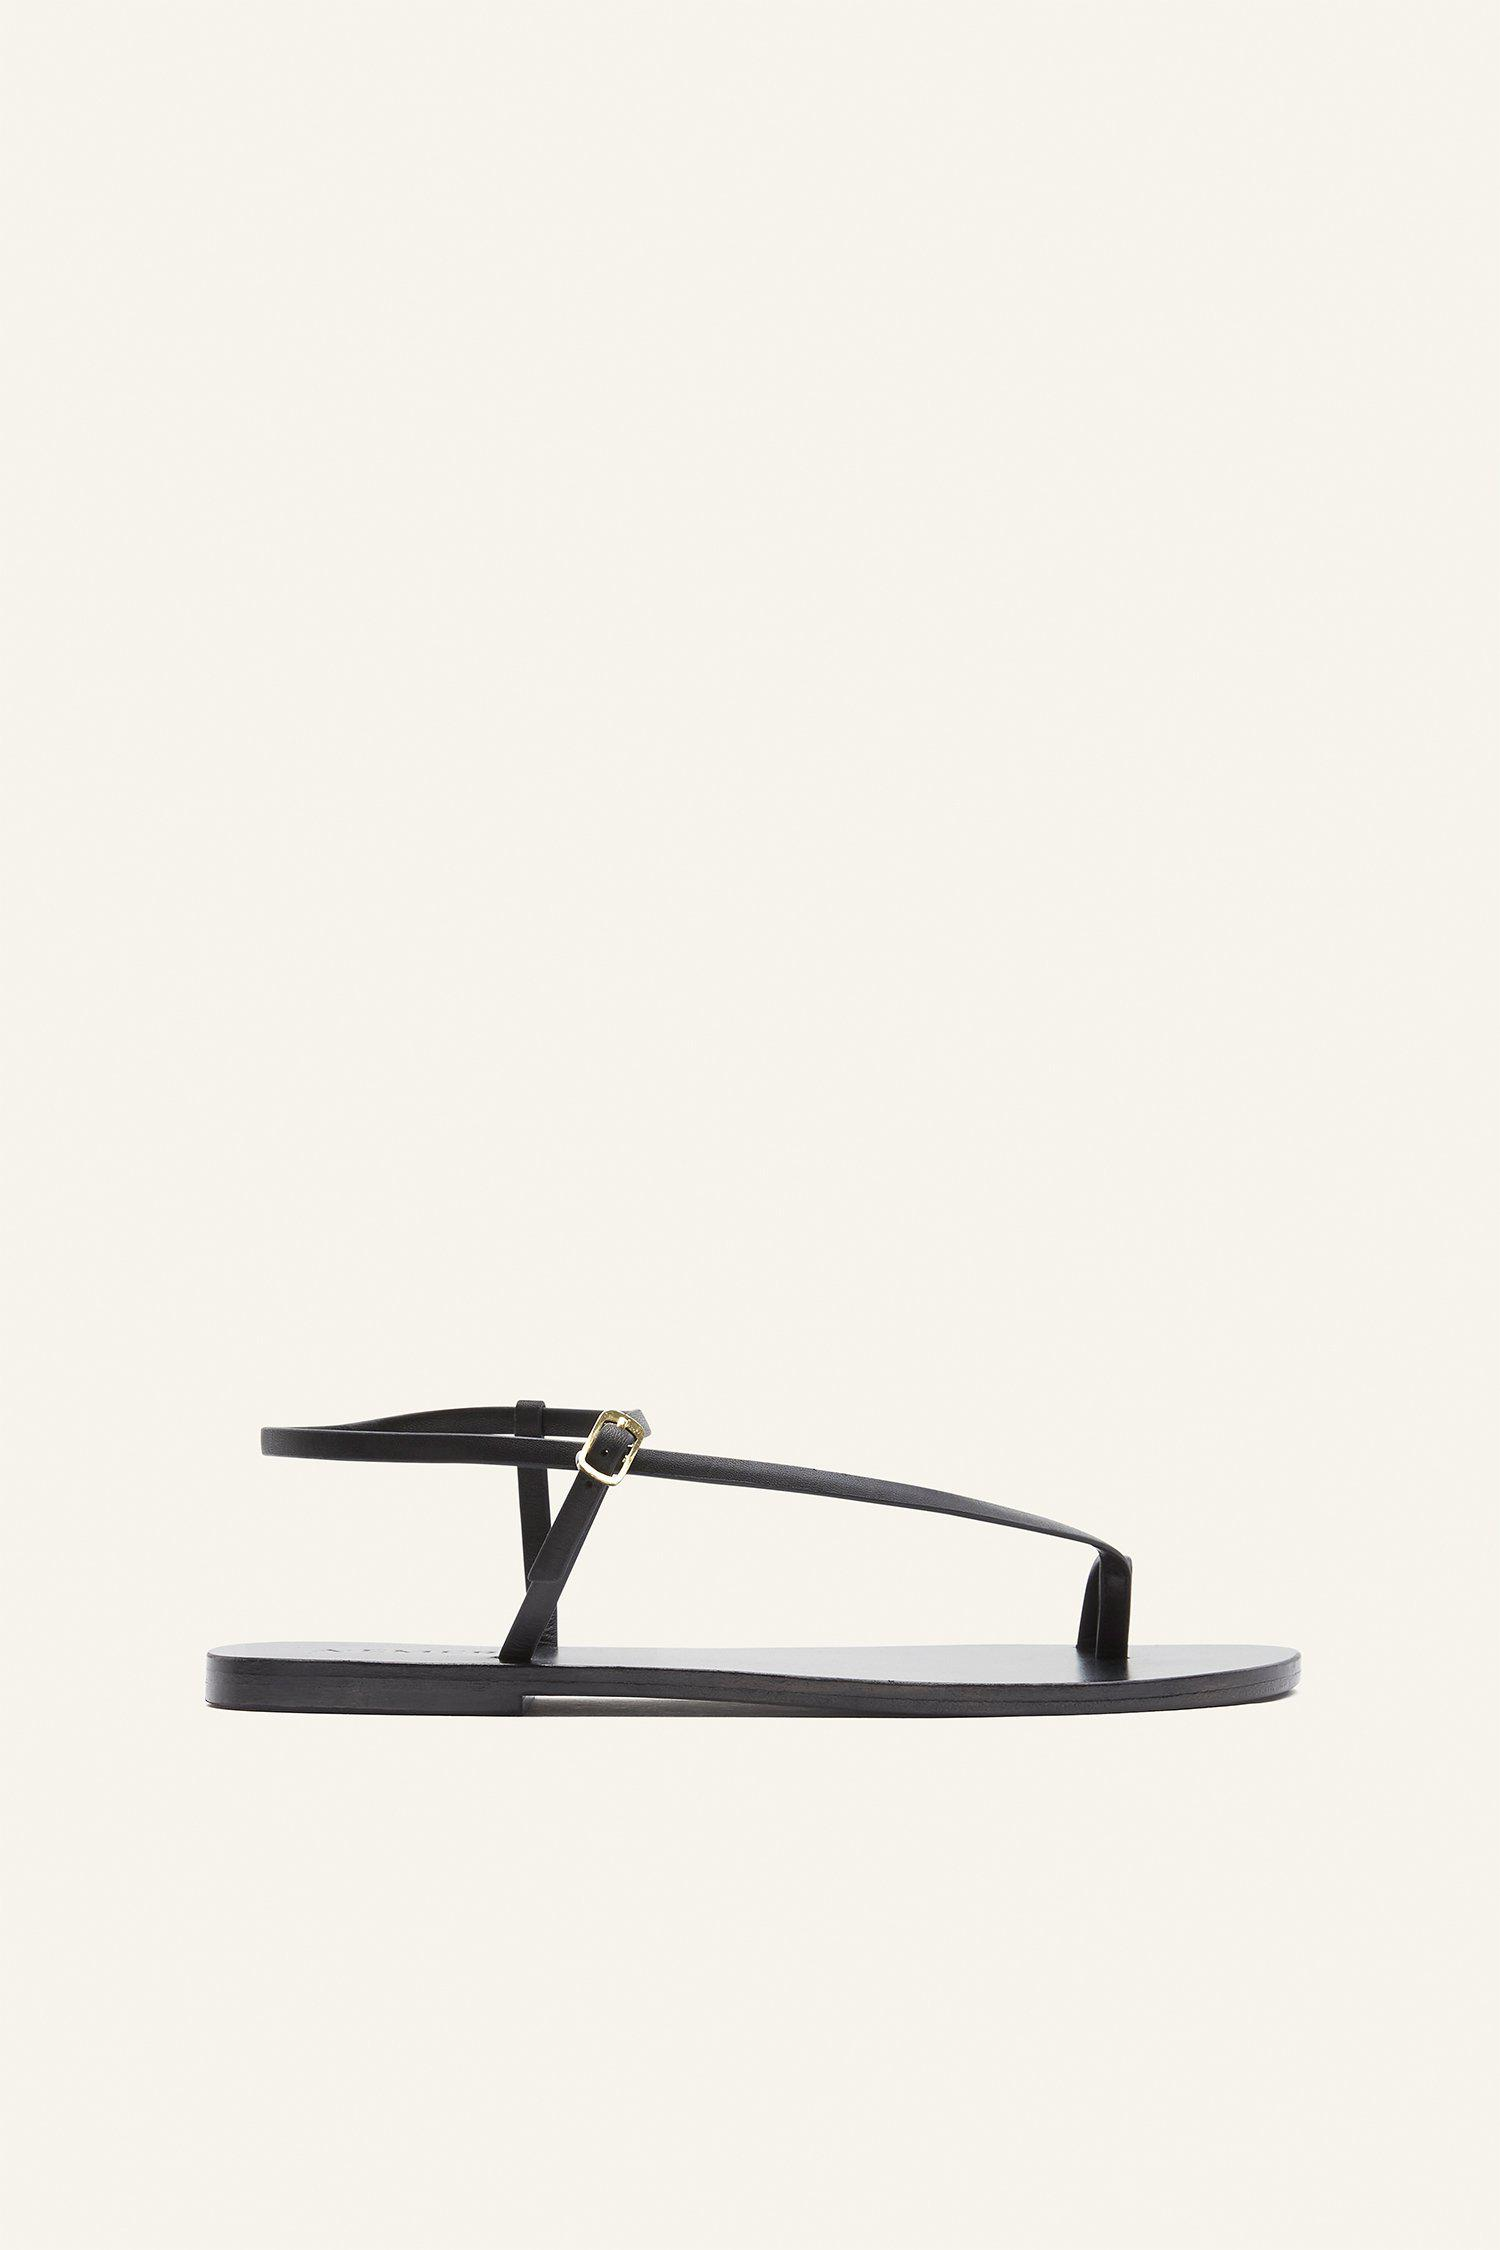 The Lily Sandal 2